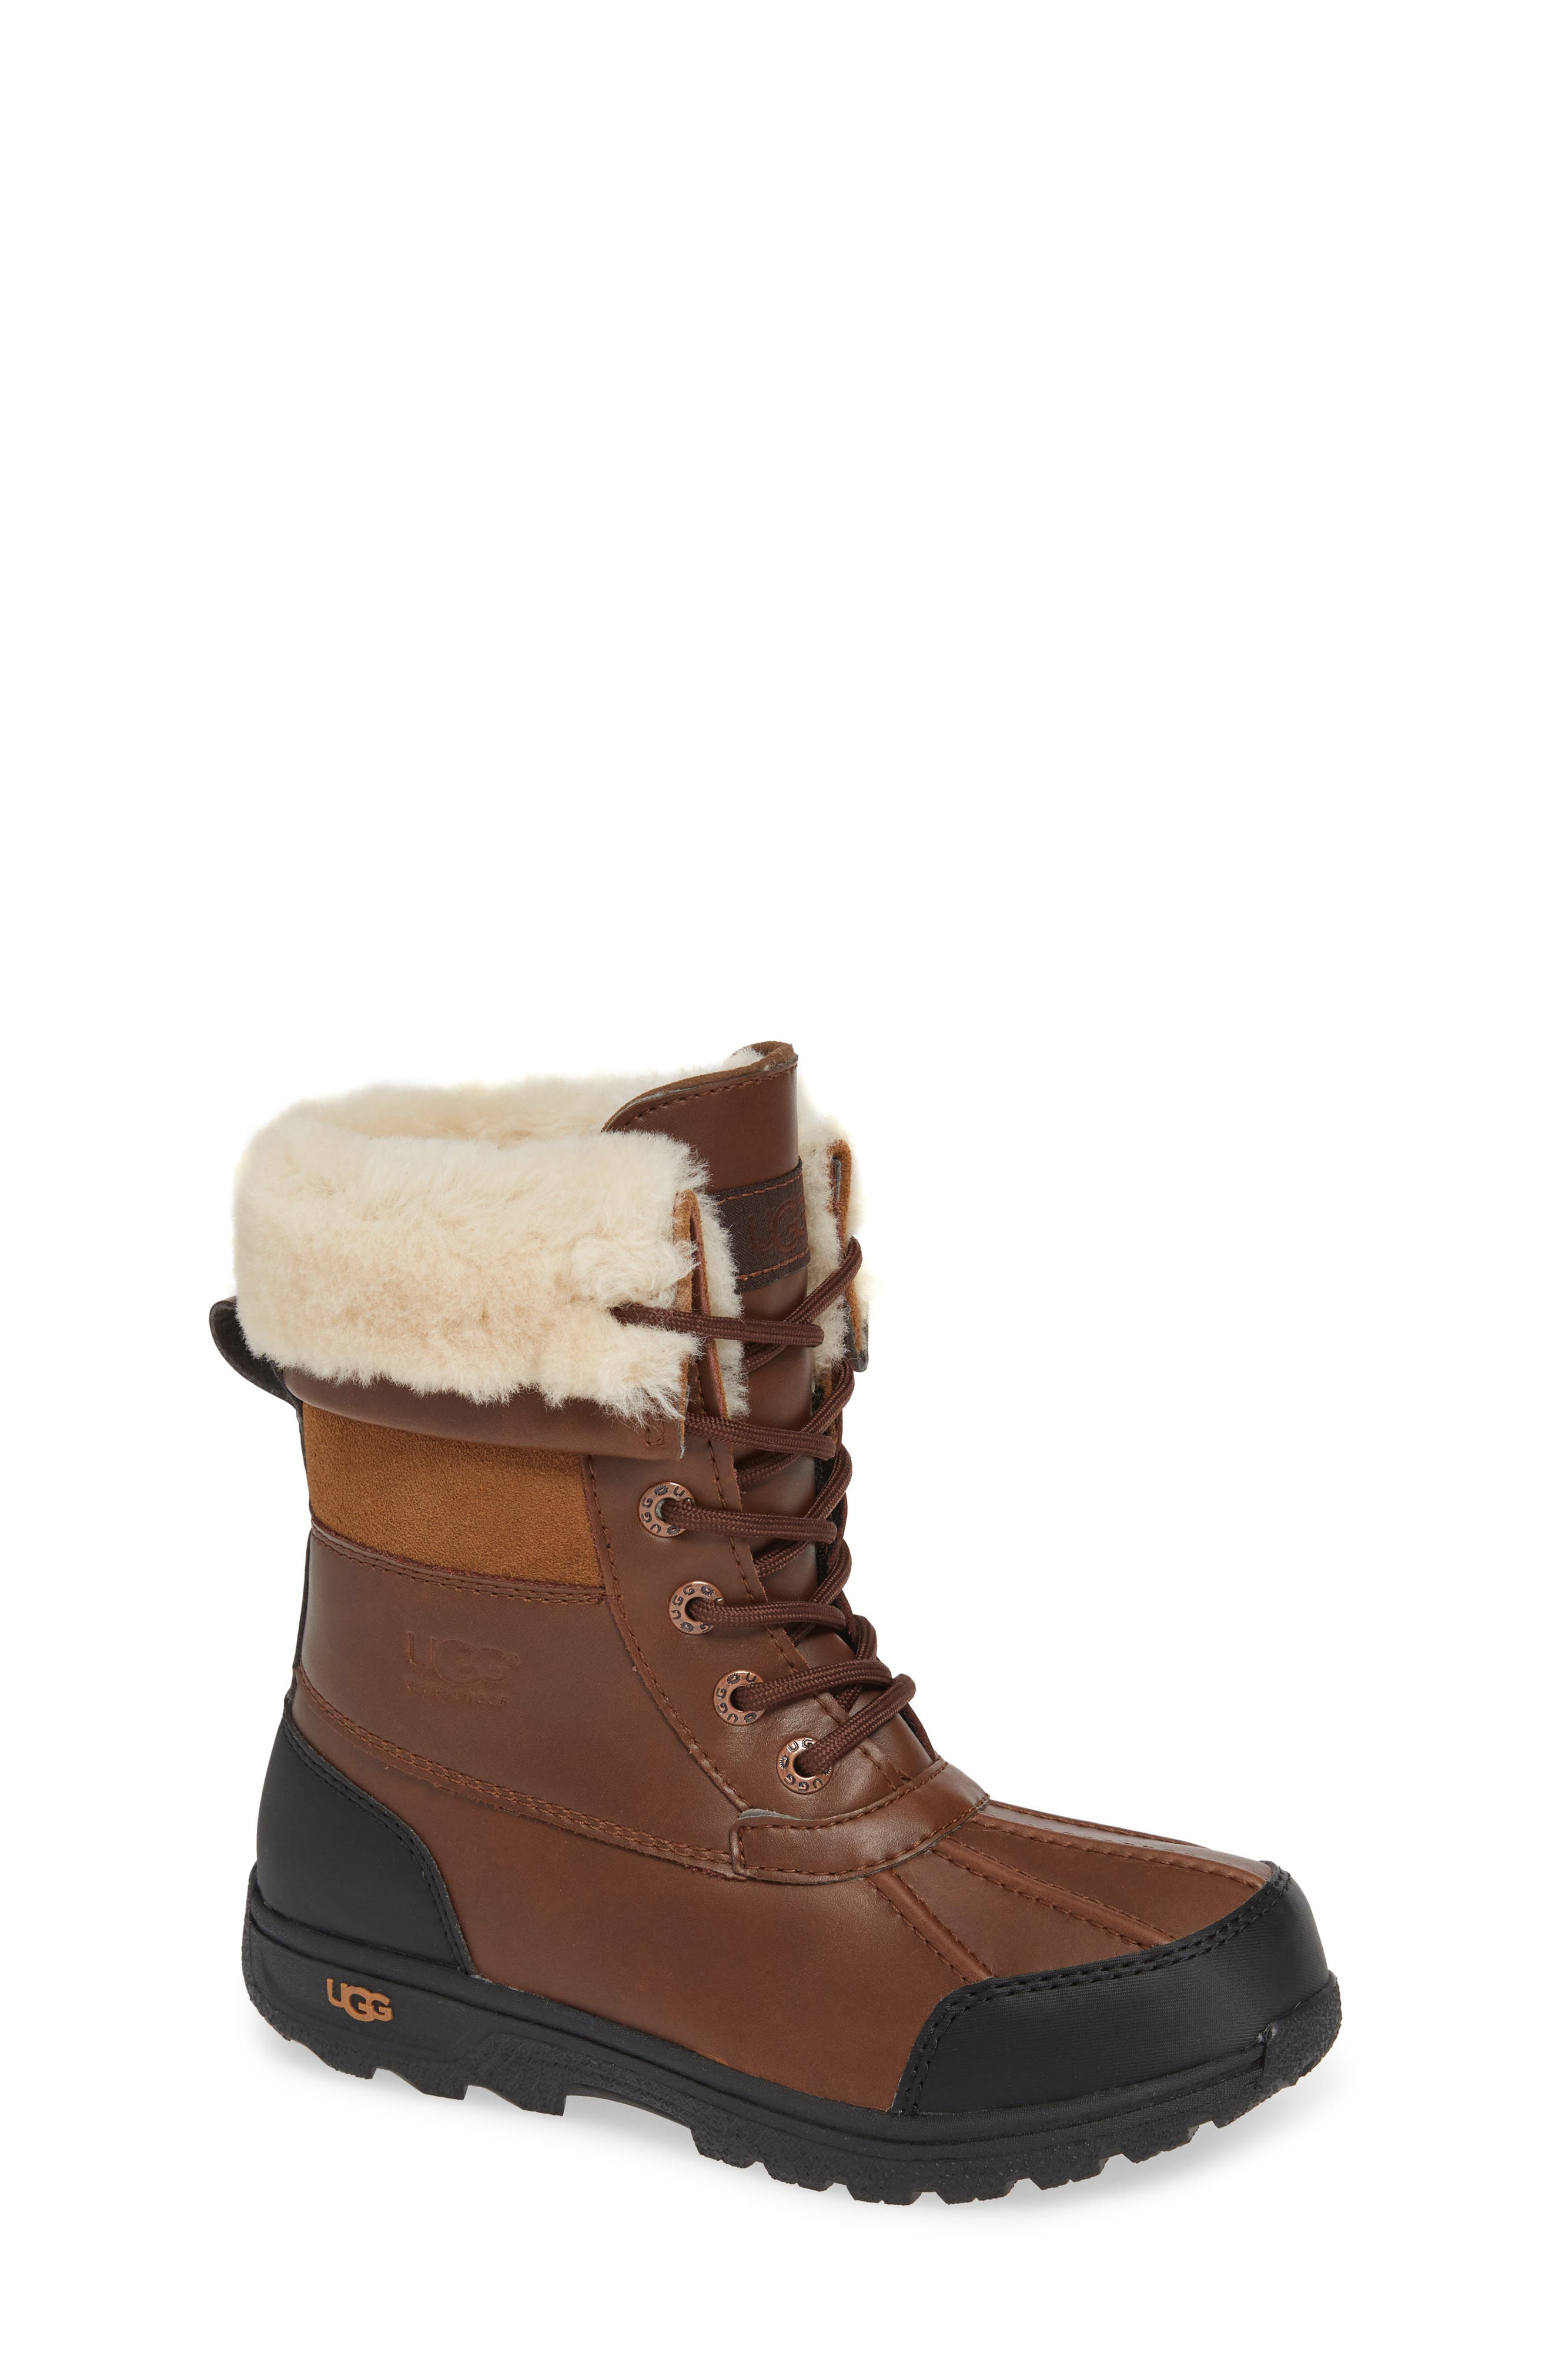 UGG<SUP>®</SUP>, Butte II Waterproof Winter Boot, Main thumbnail 1, color, WORCHESTER